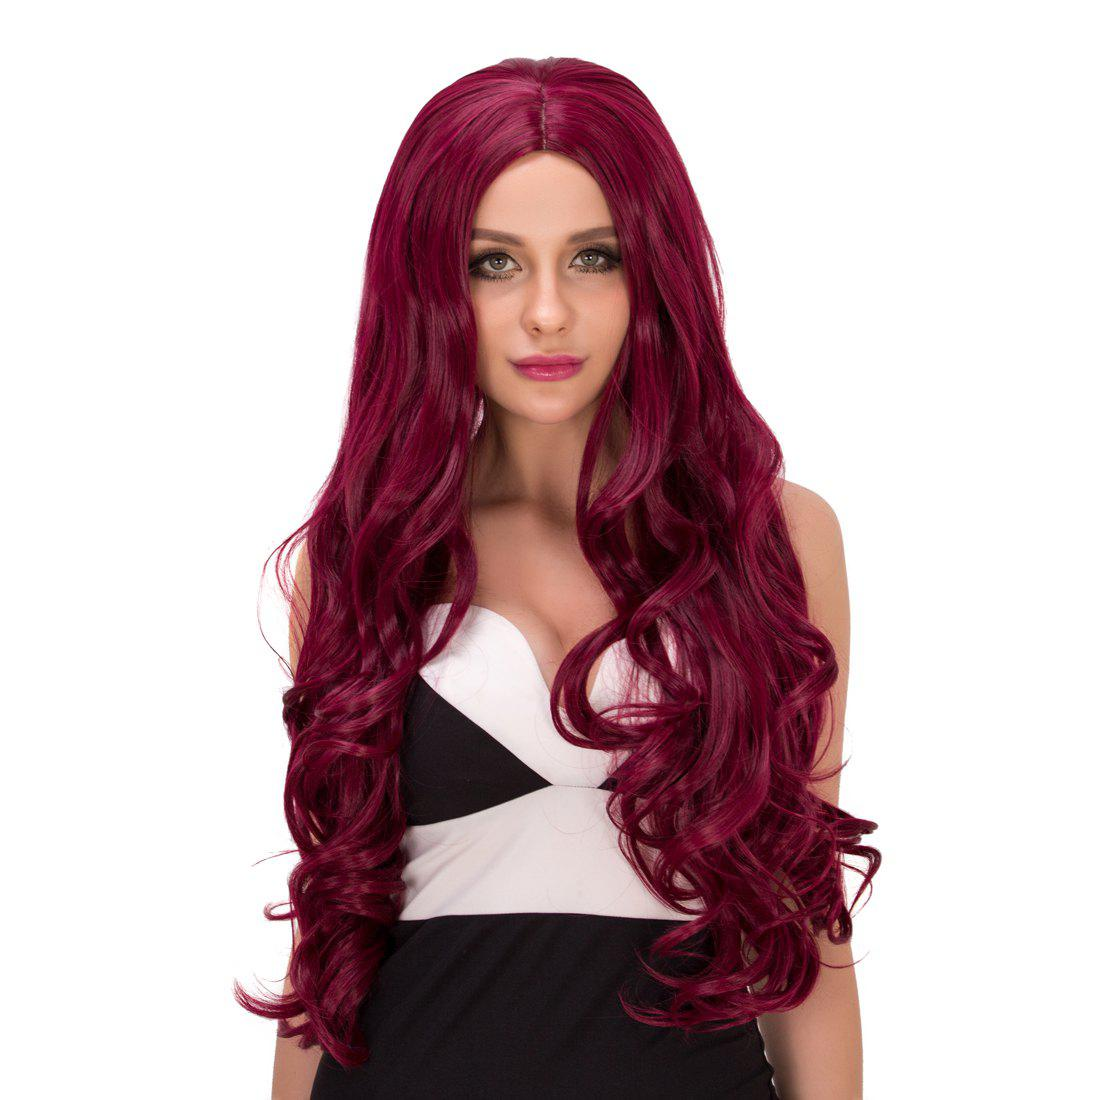 Fashion Women's Long Wavy Middle Part Purplish Red Synthetic Hair Wig